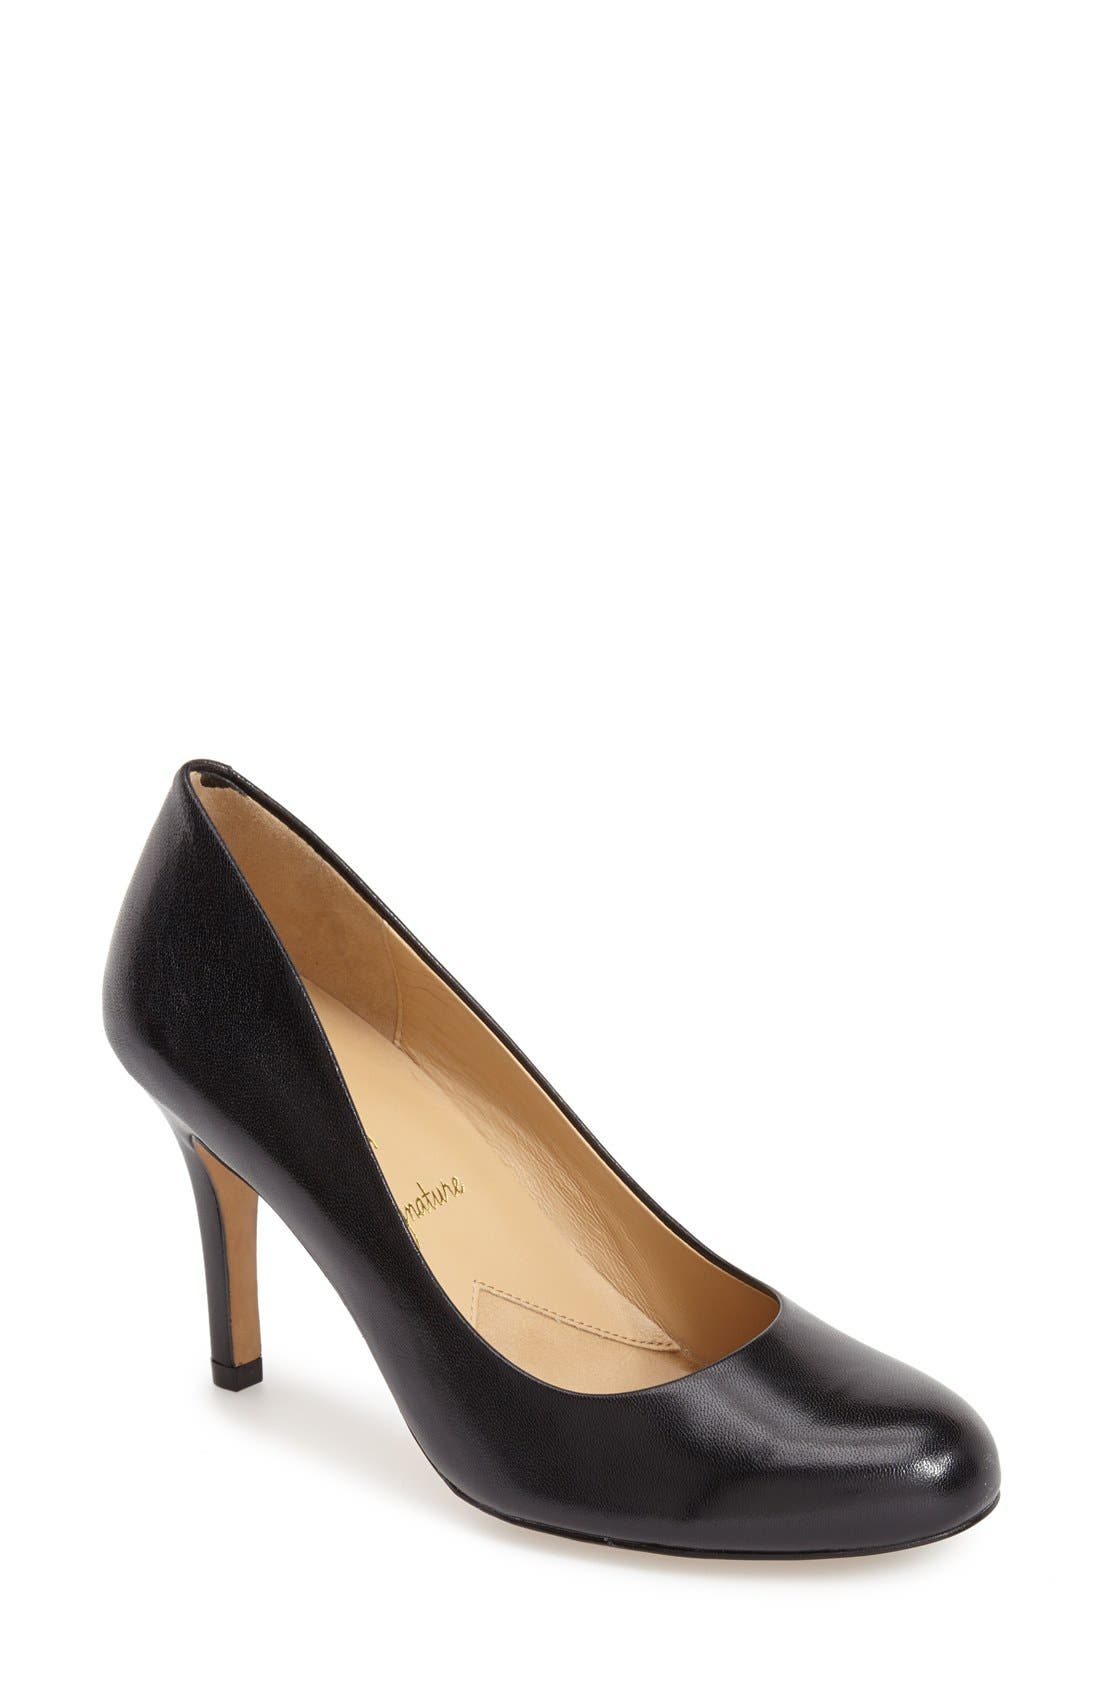 TROTTERS 'Signature Gigi' Round Toe Pump, Main, color, BLACK